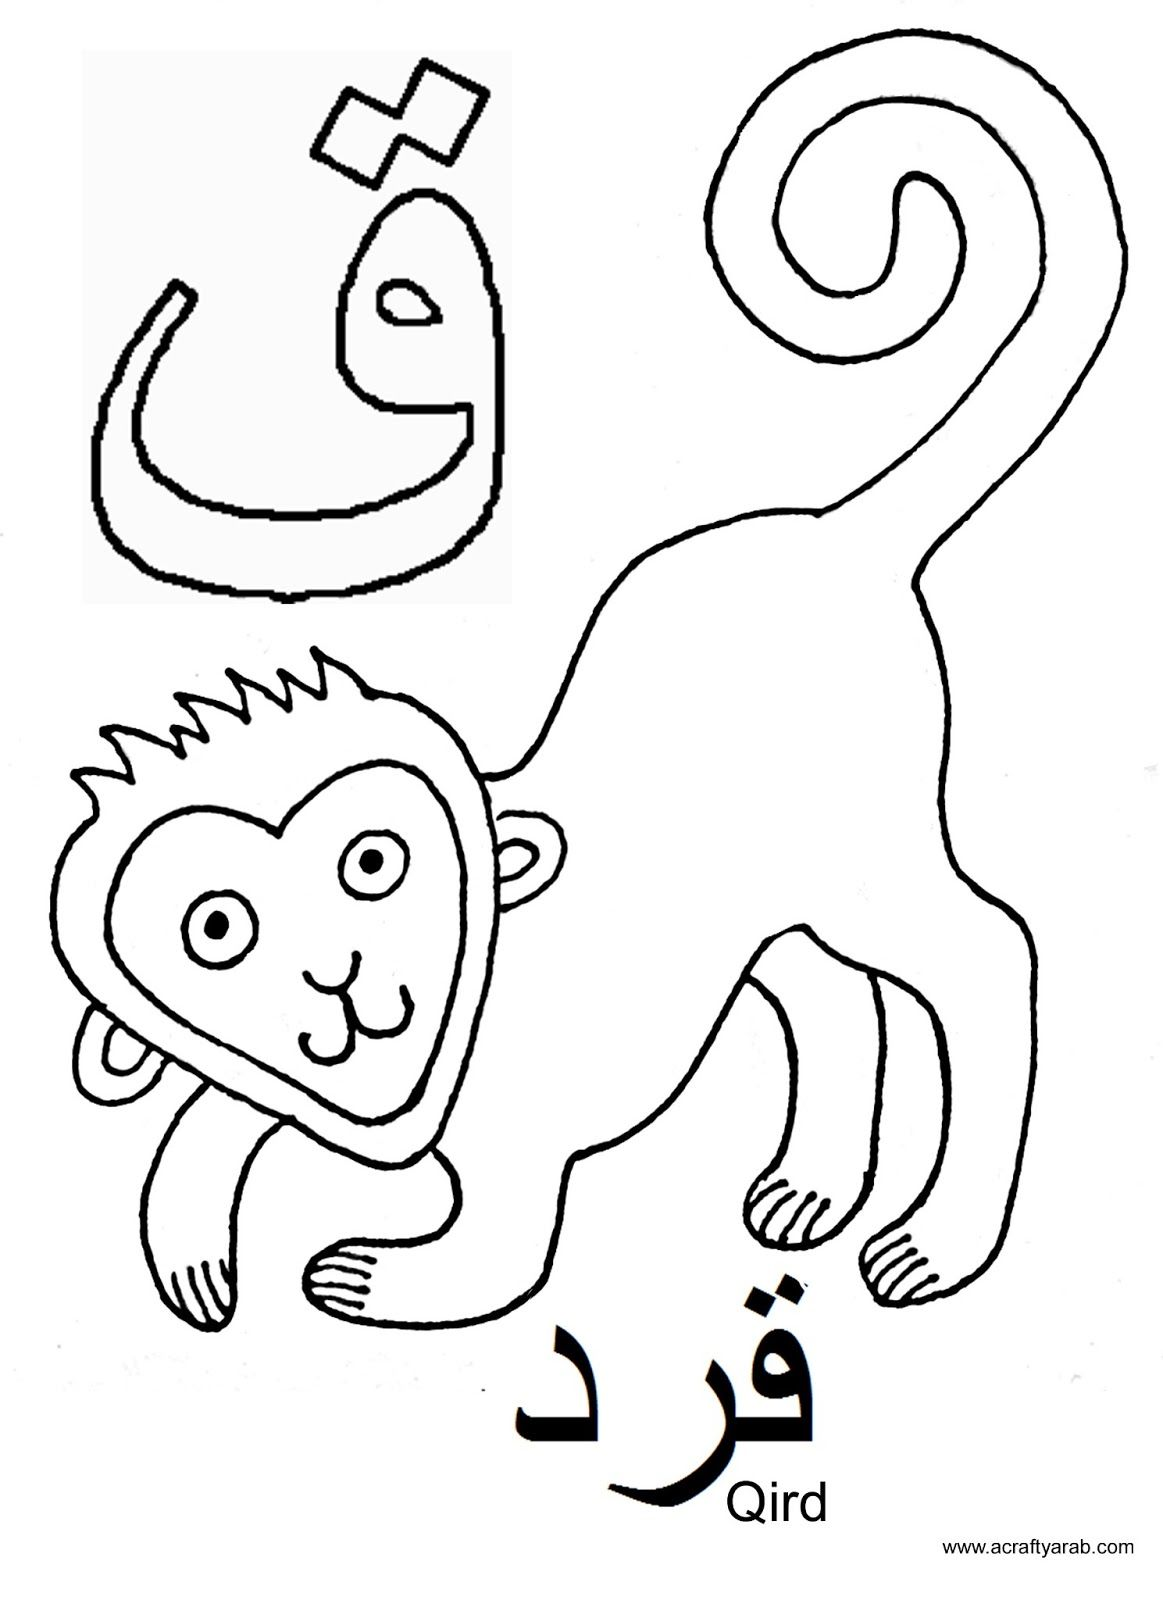 L sound coloring pages - A Crafty Arab Arabic Alphabet Coloring Pages Qaf Is For Qird